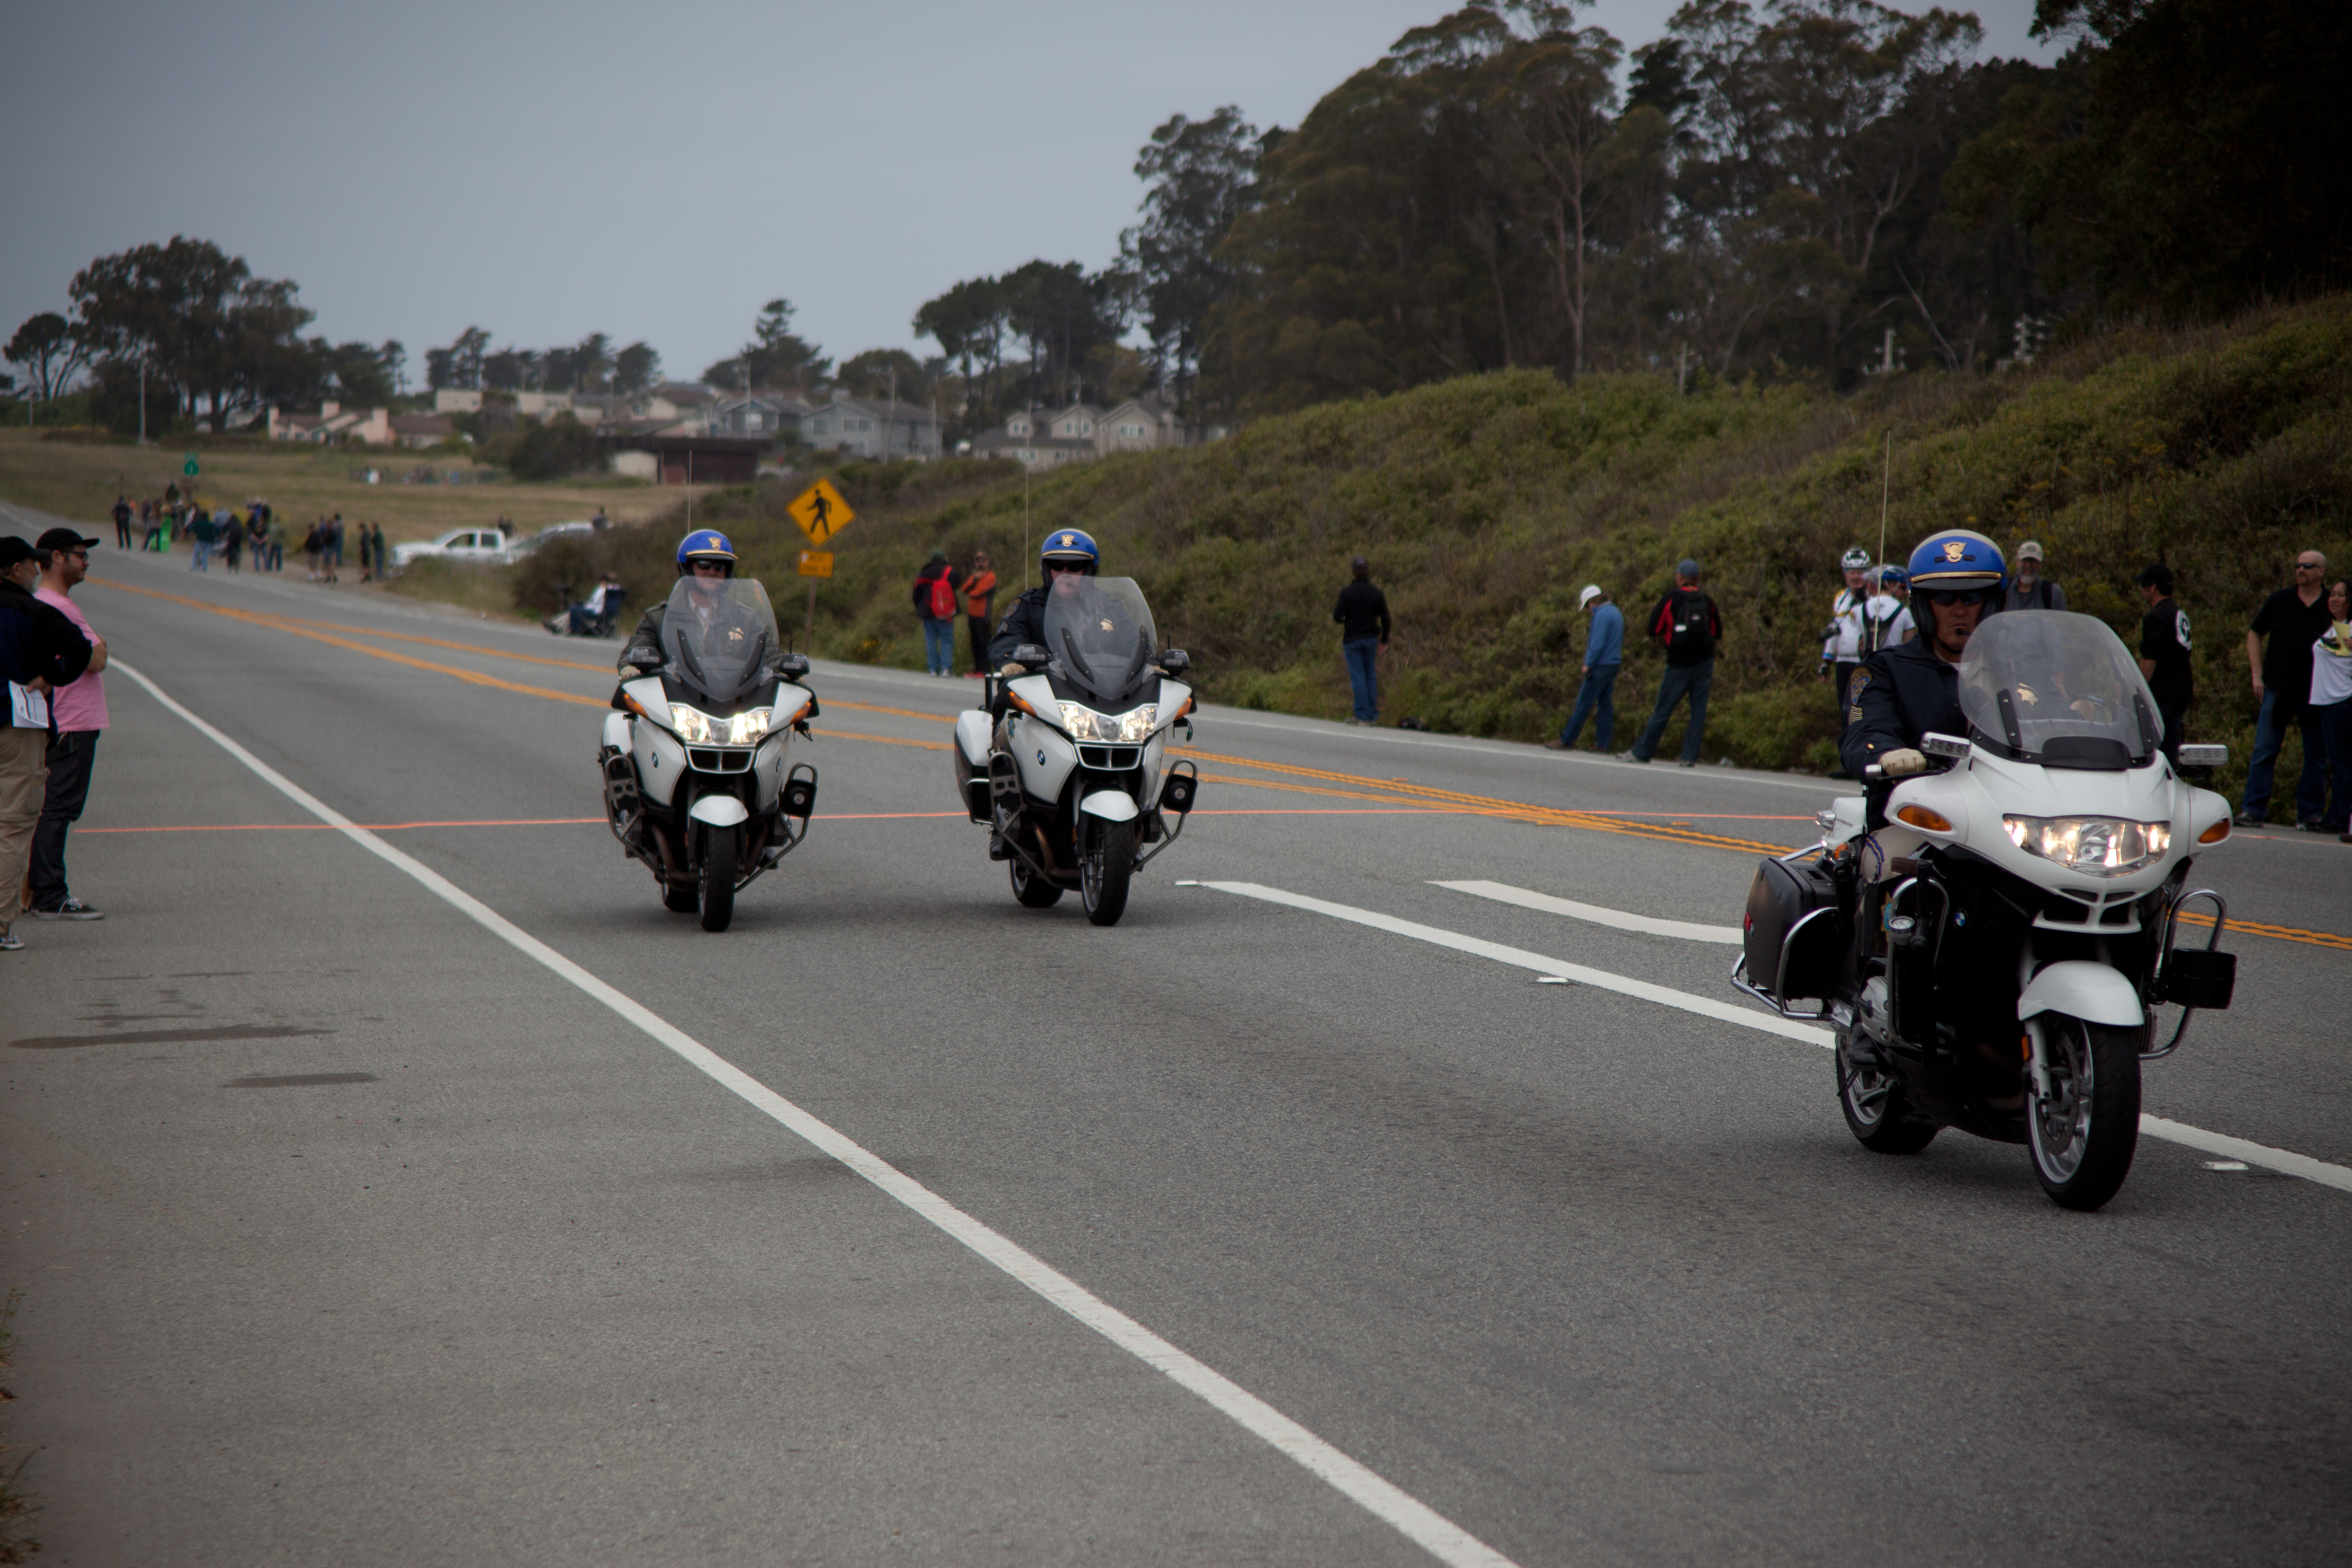 Photo: Police before the race